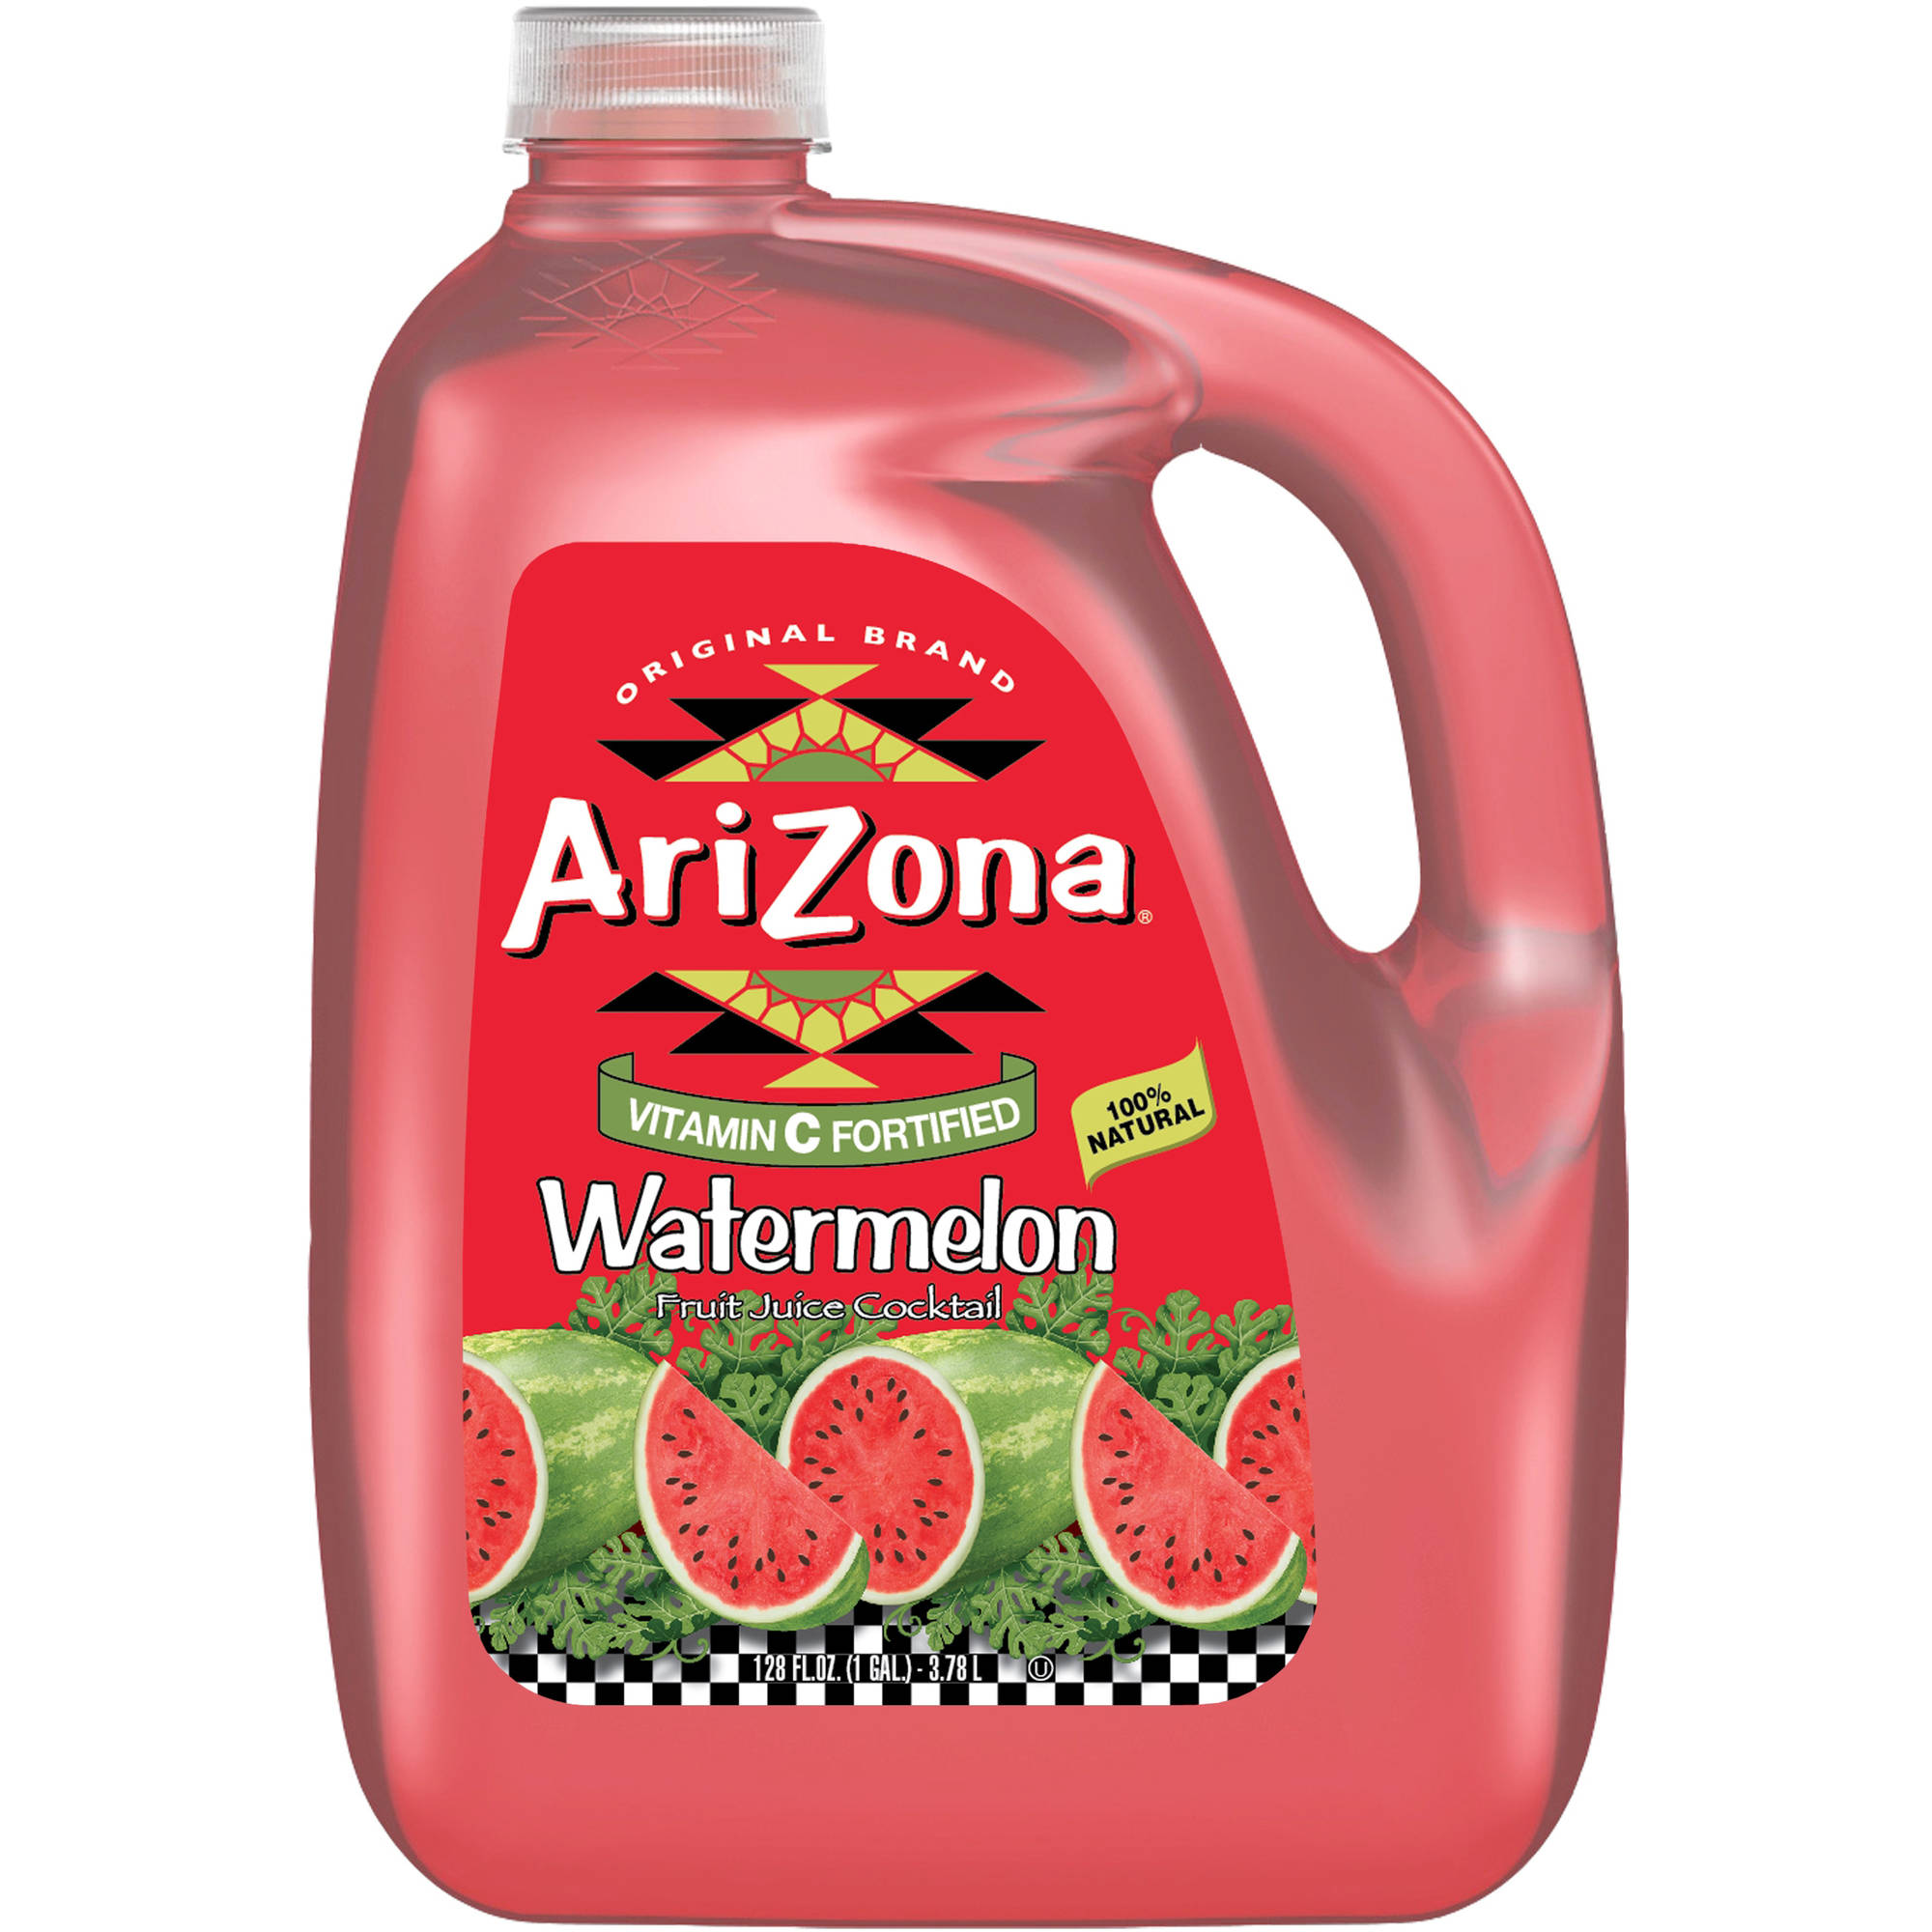 AriZona Watermelon Fruit Juice Cocktail, 1 gal